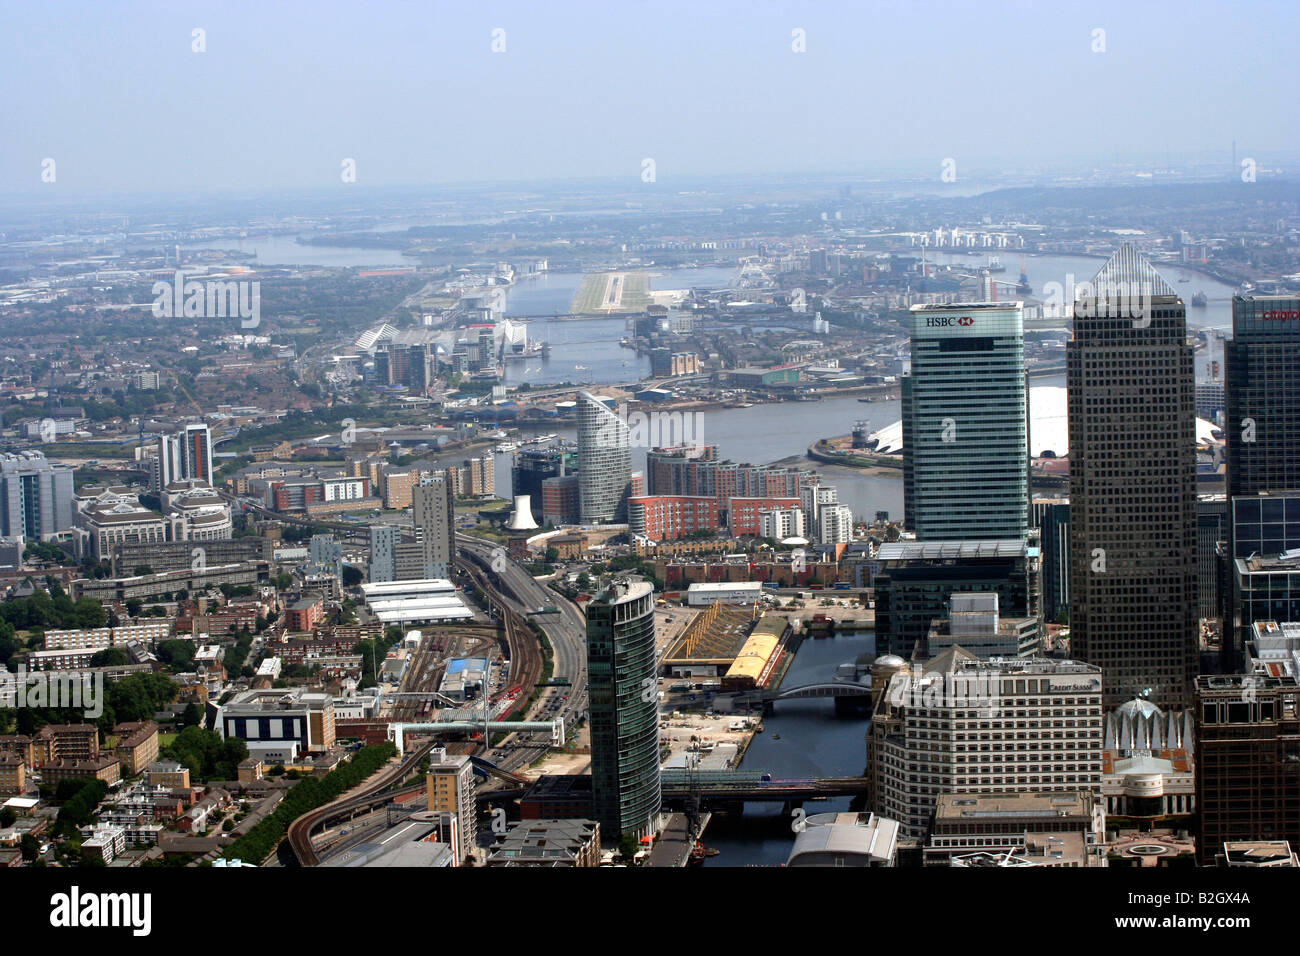 Aerial view of Canary Wharf London Docklands with London City Airport in the Distance - Stock Image